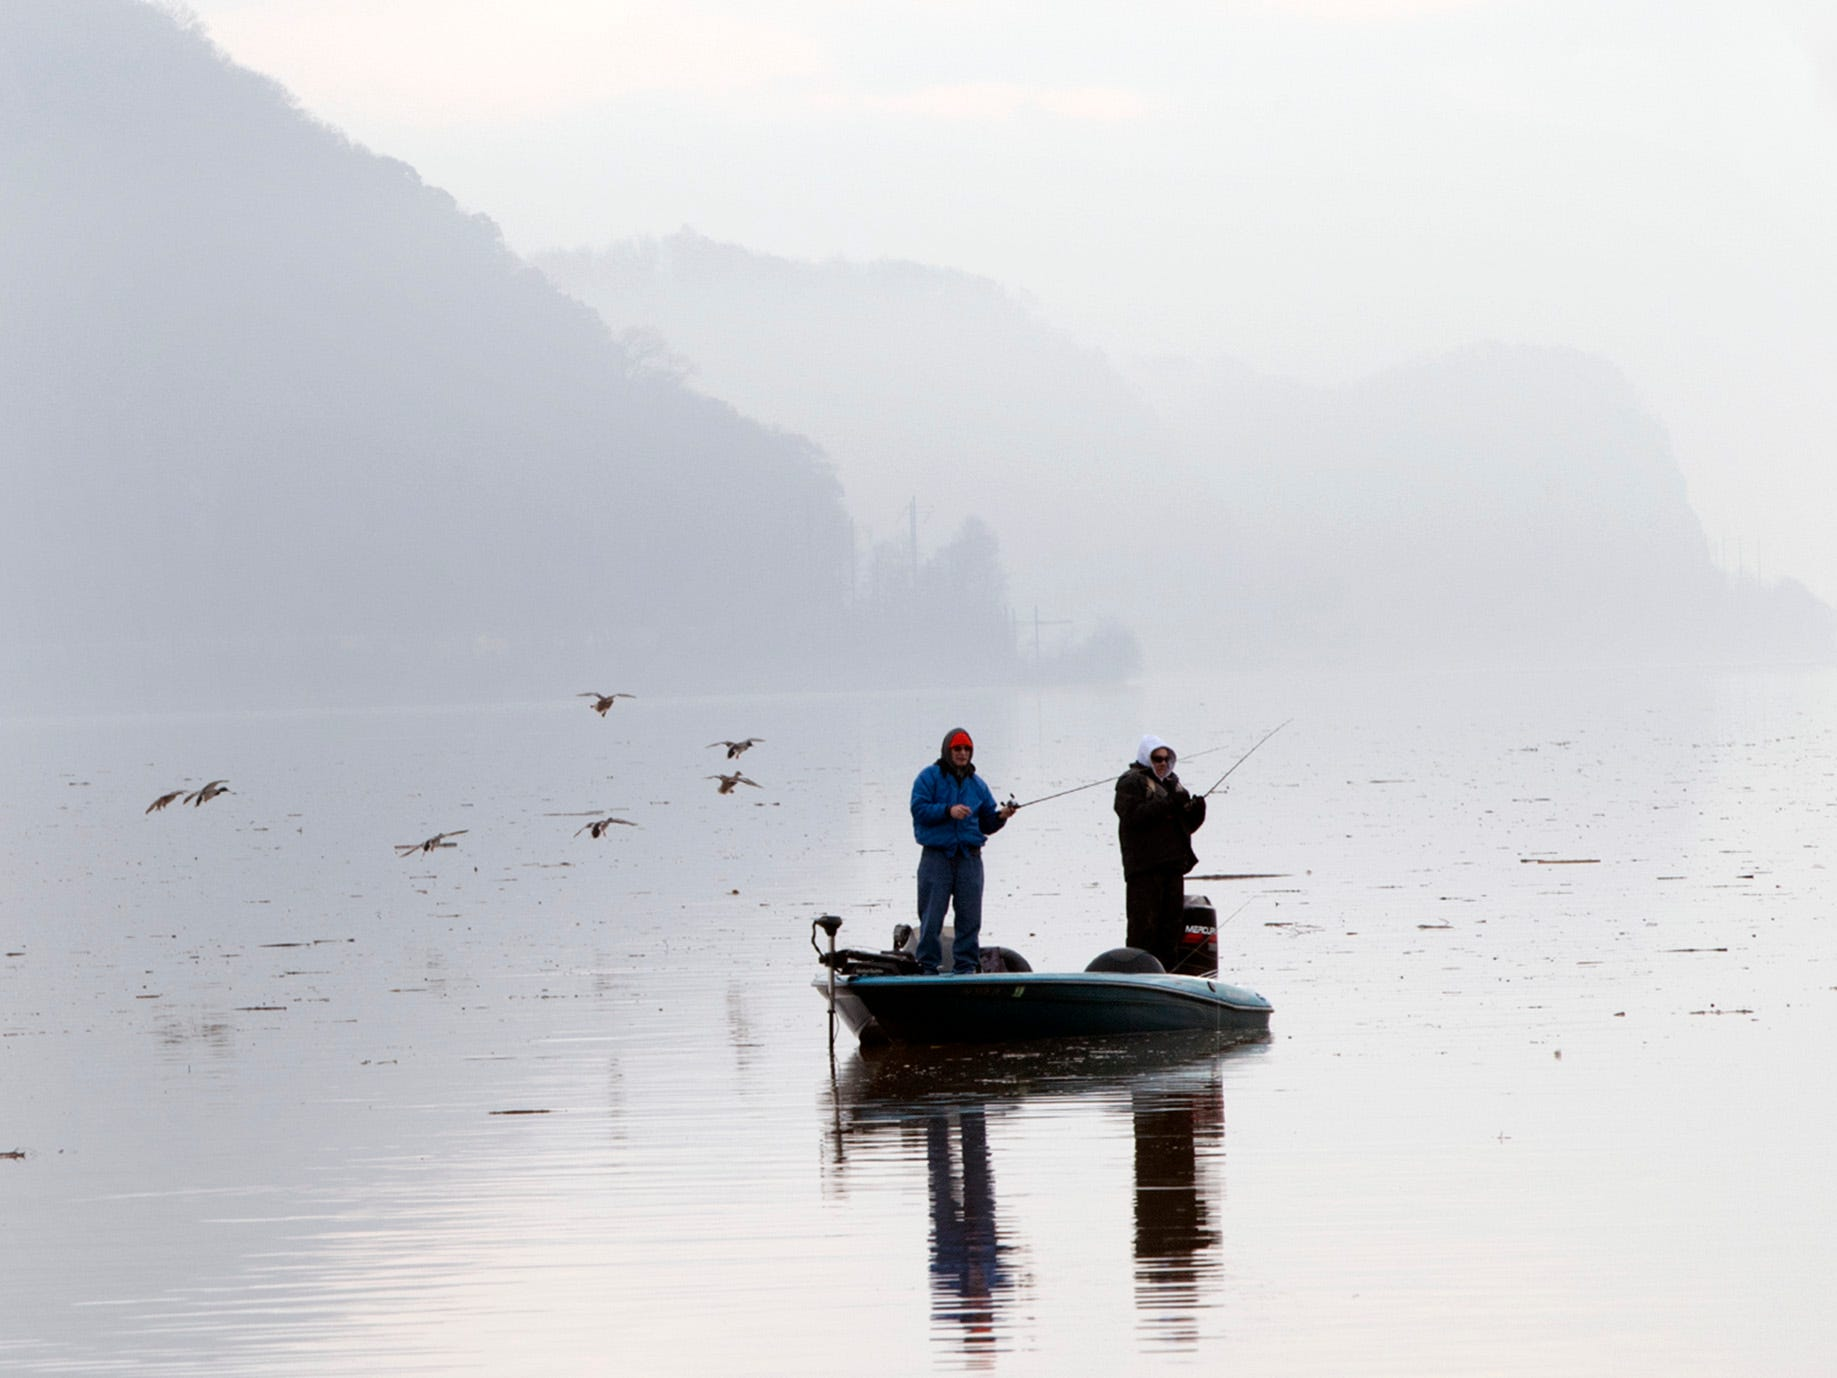 Fisherman wait for a catch on still water in the fog off of Long Level in Lower Windsor Township on Sunday November 25, 2018.